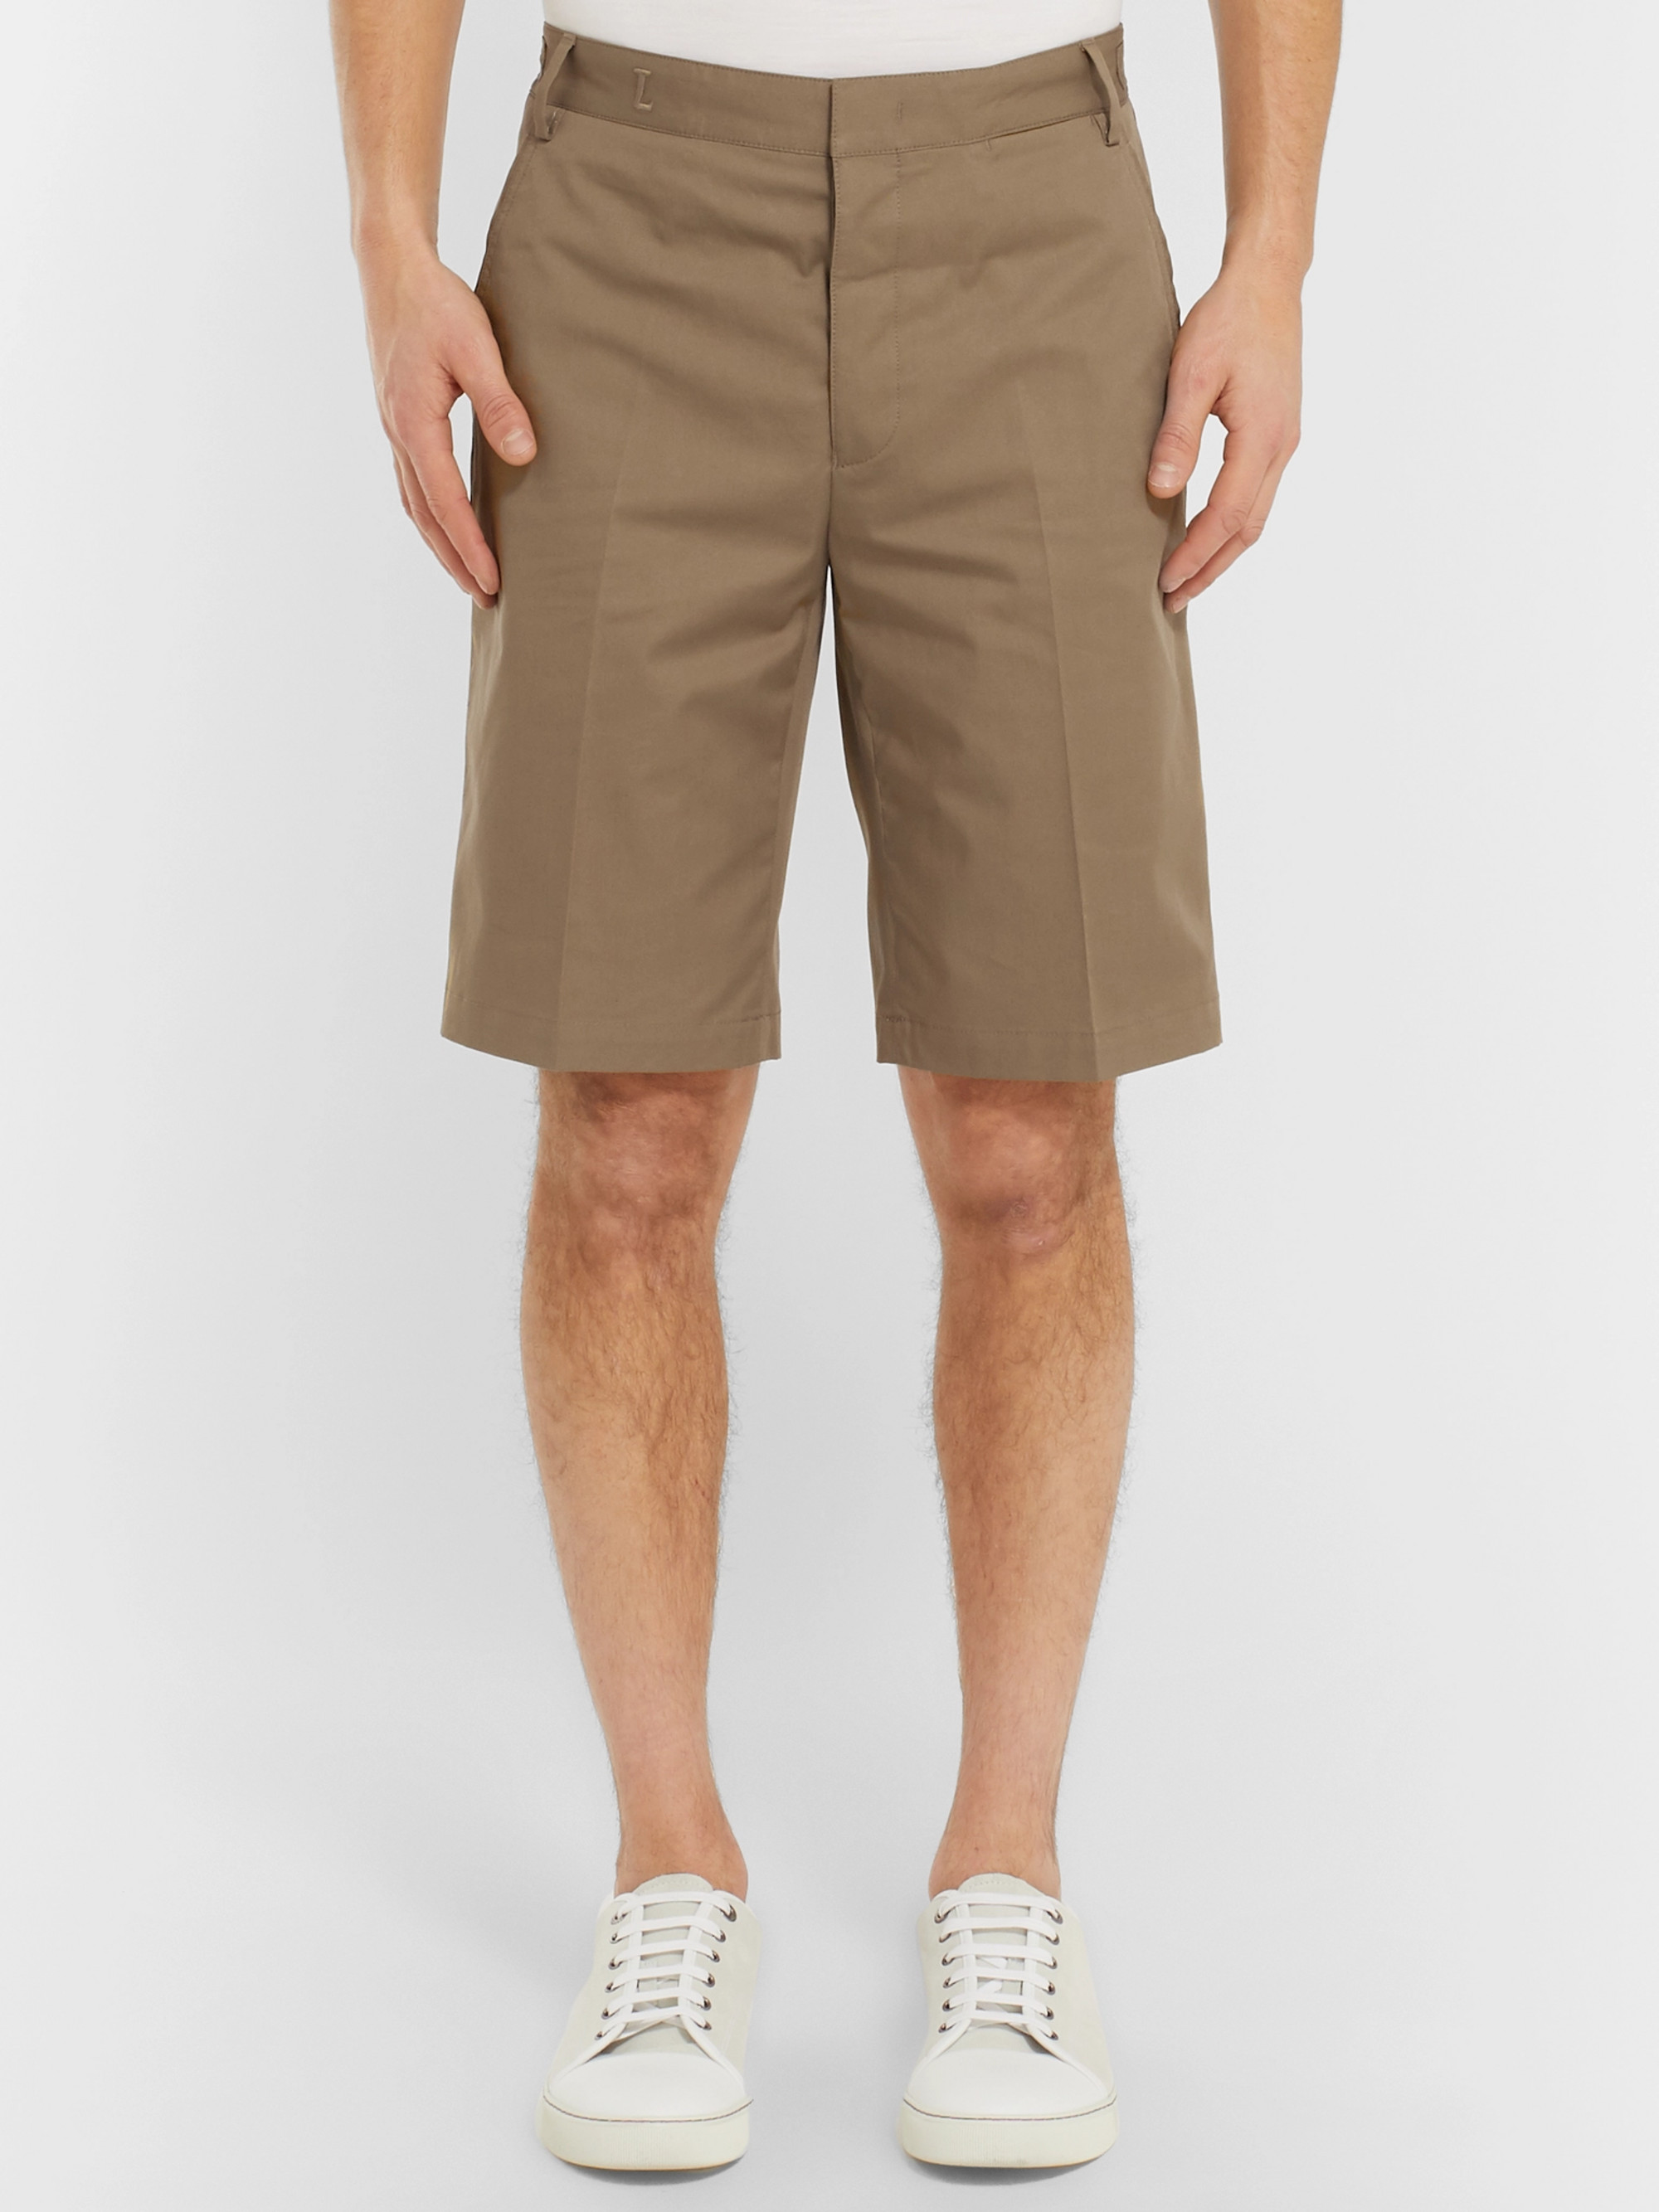 Lanvin Slim-Fit Cotton-Twill Chino Shorts